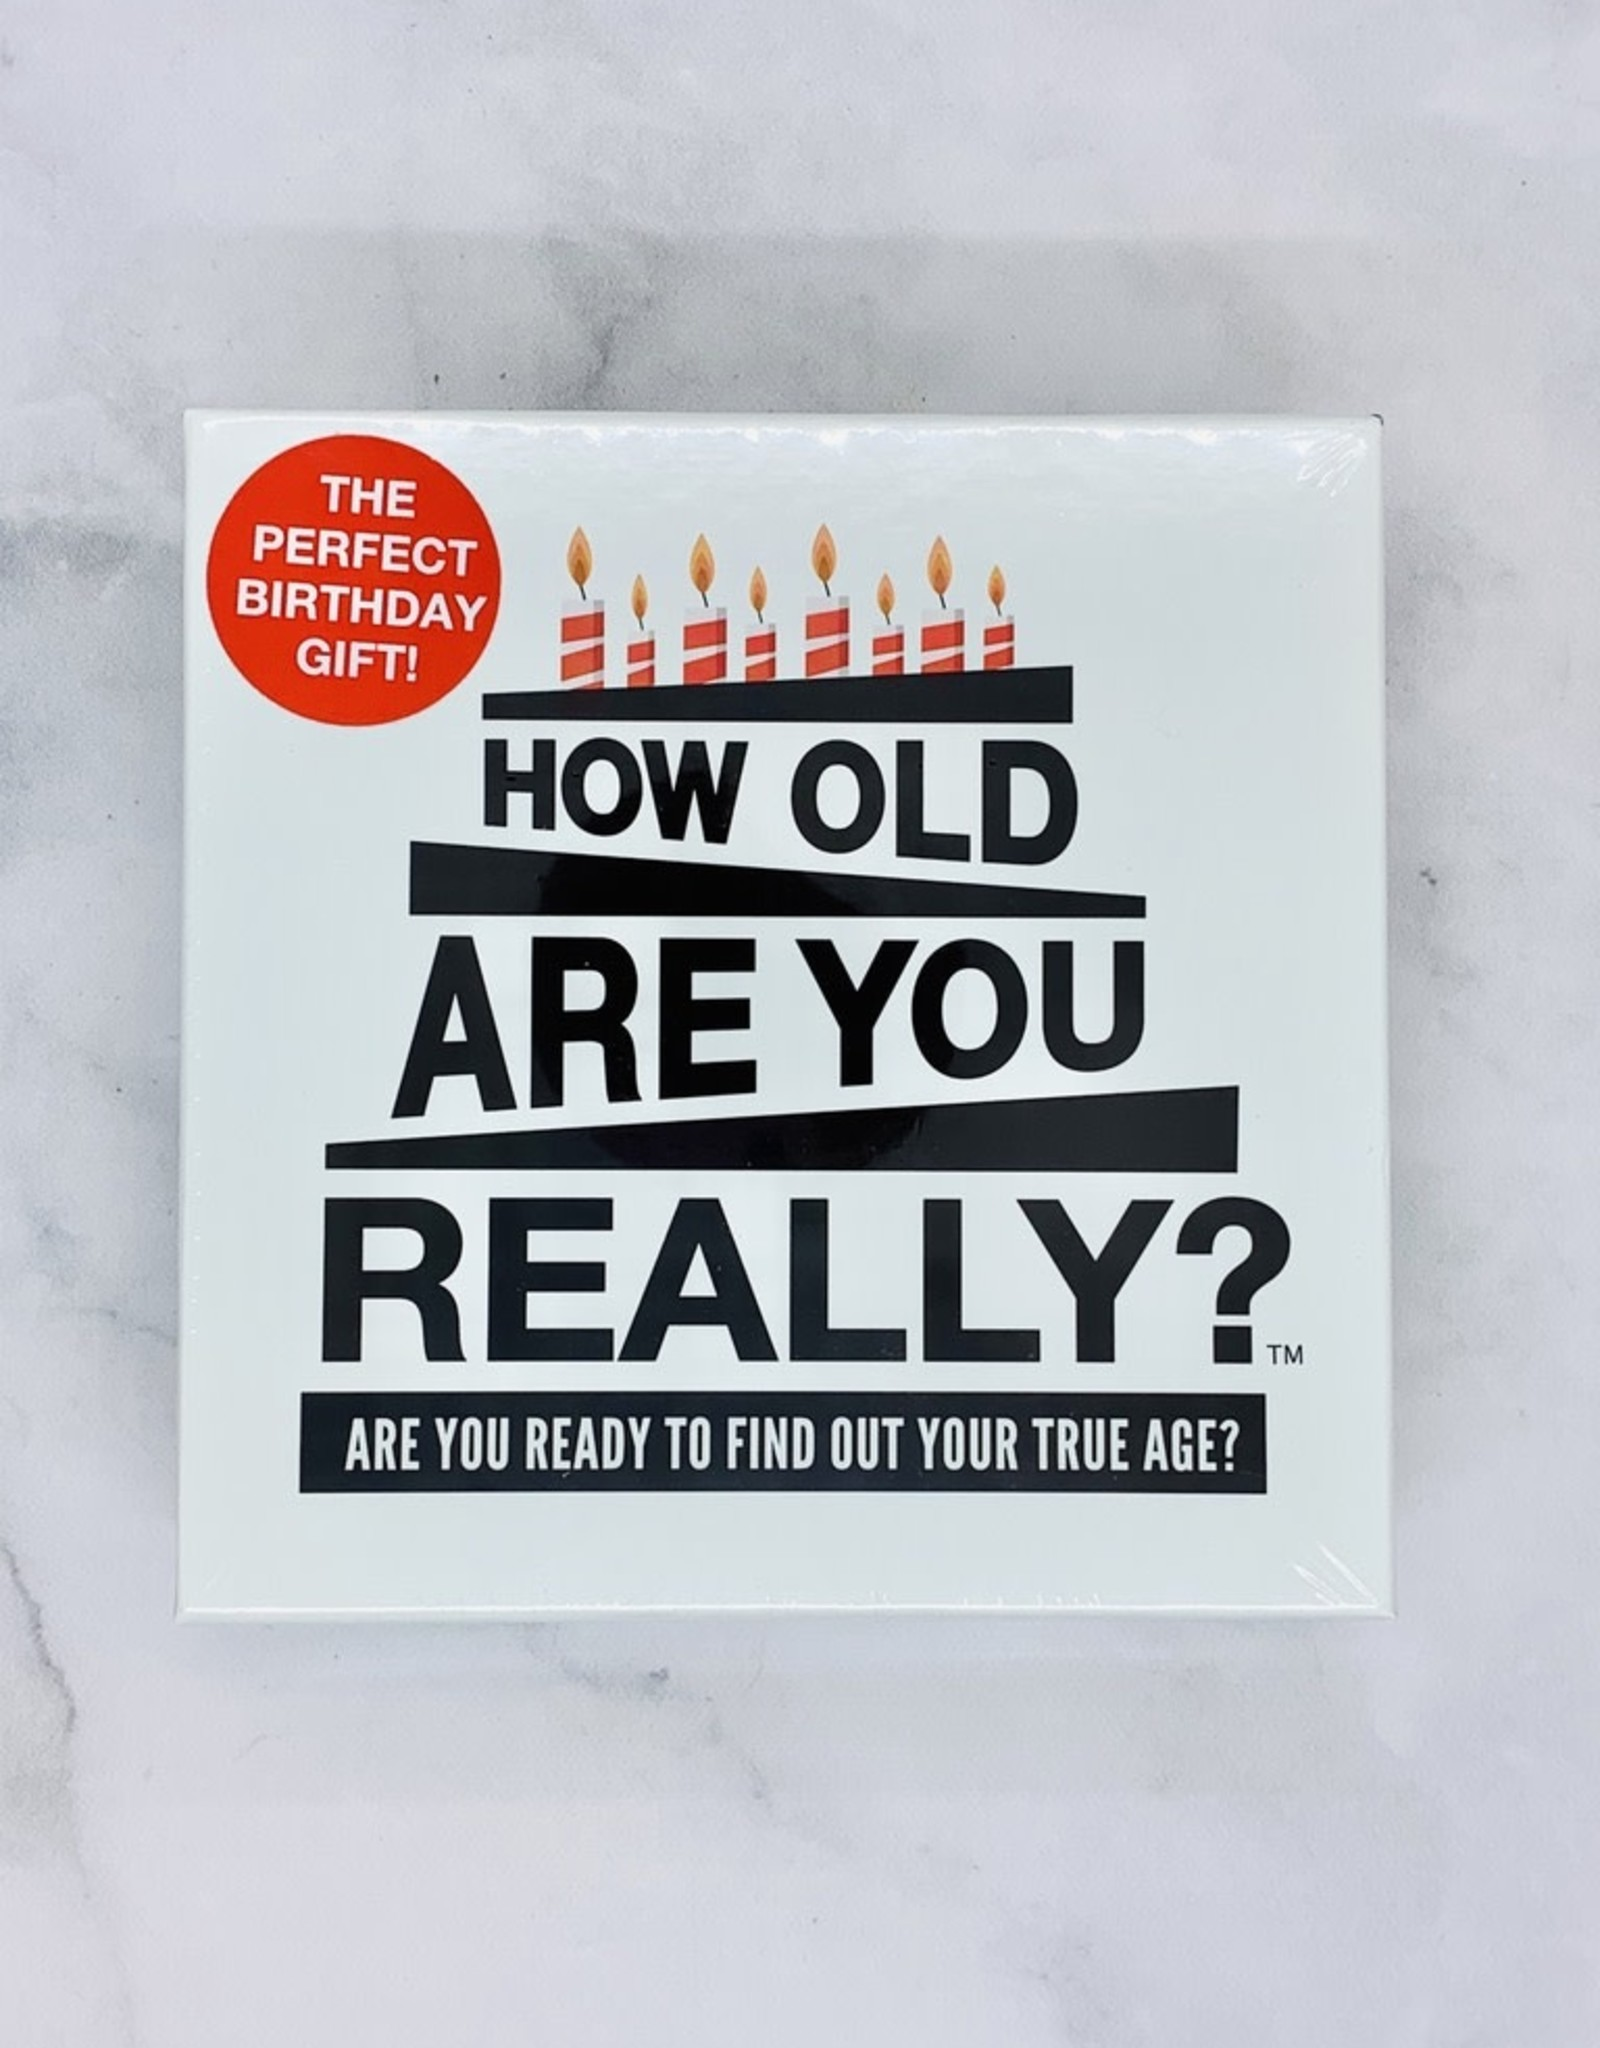 How Old Are You Really?